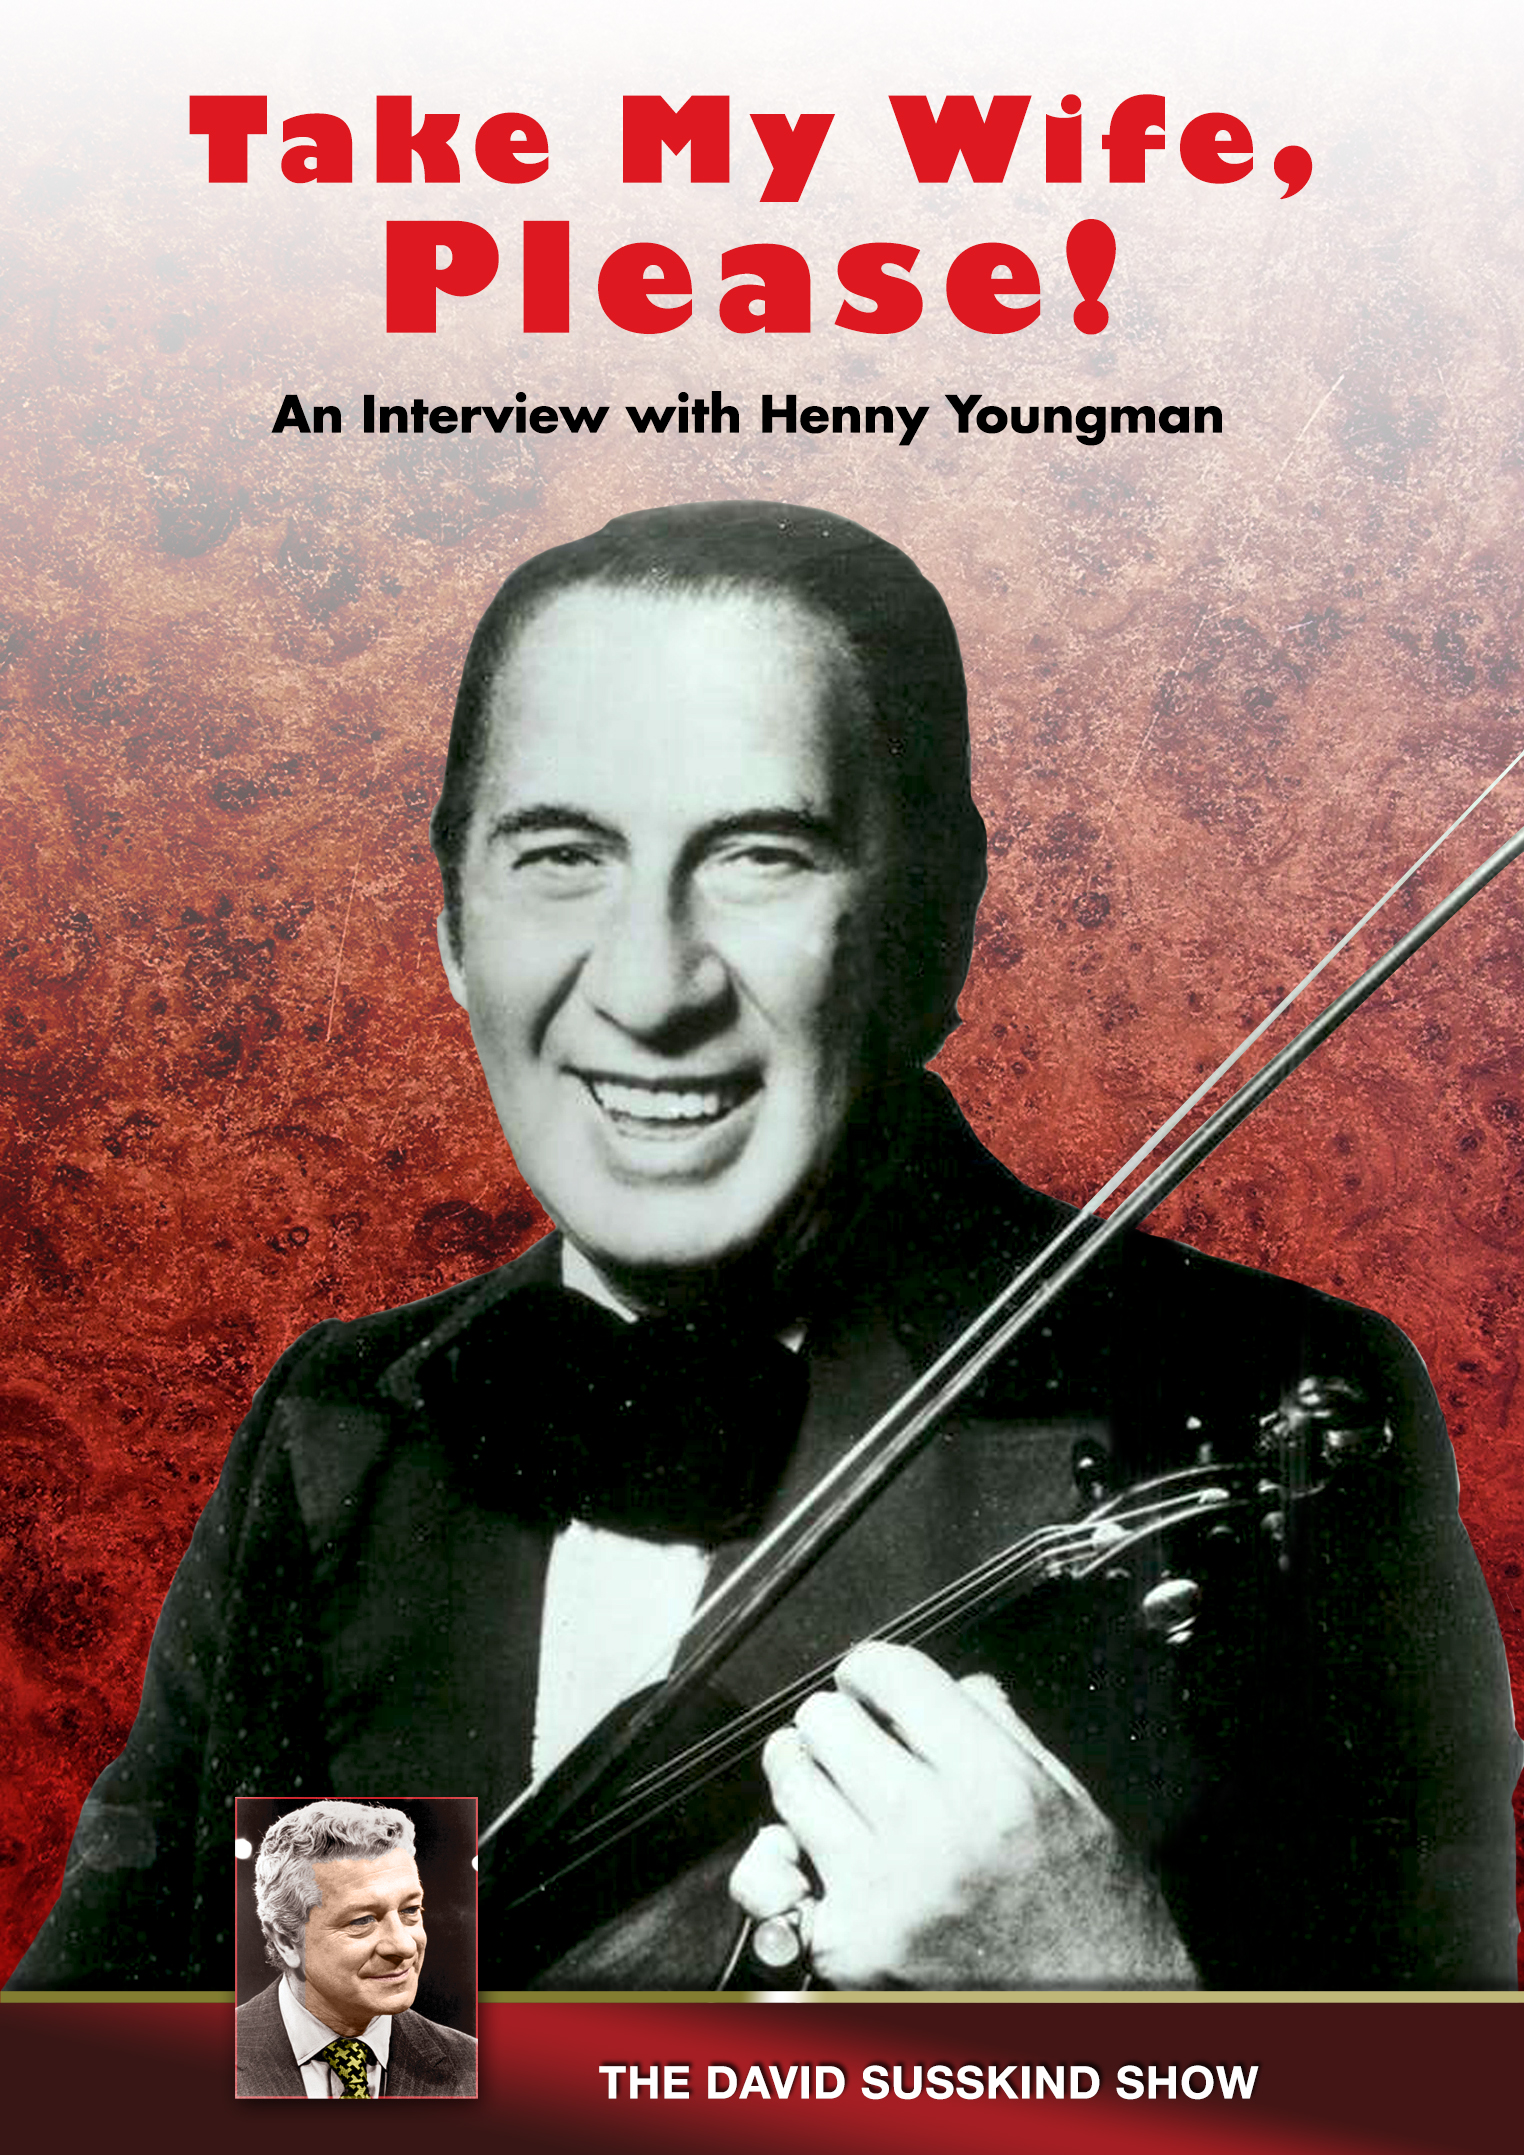 The David Susskind Show: Henny Youngman